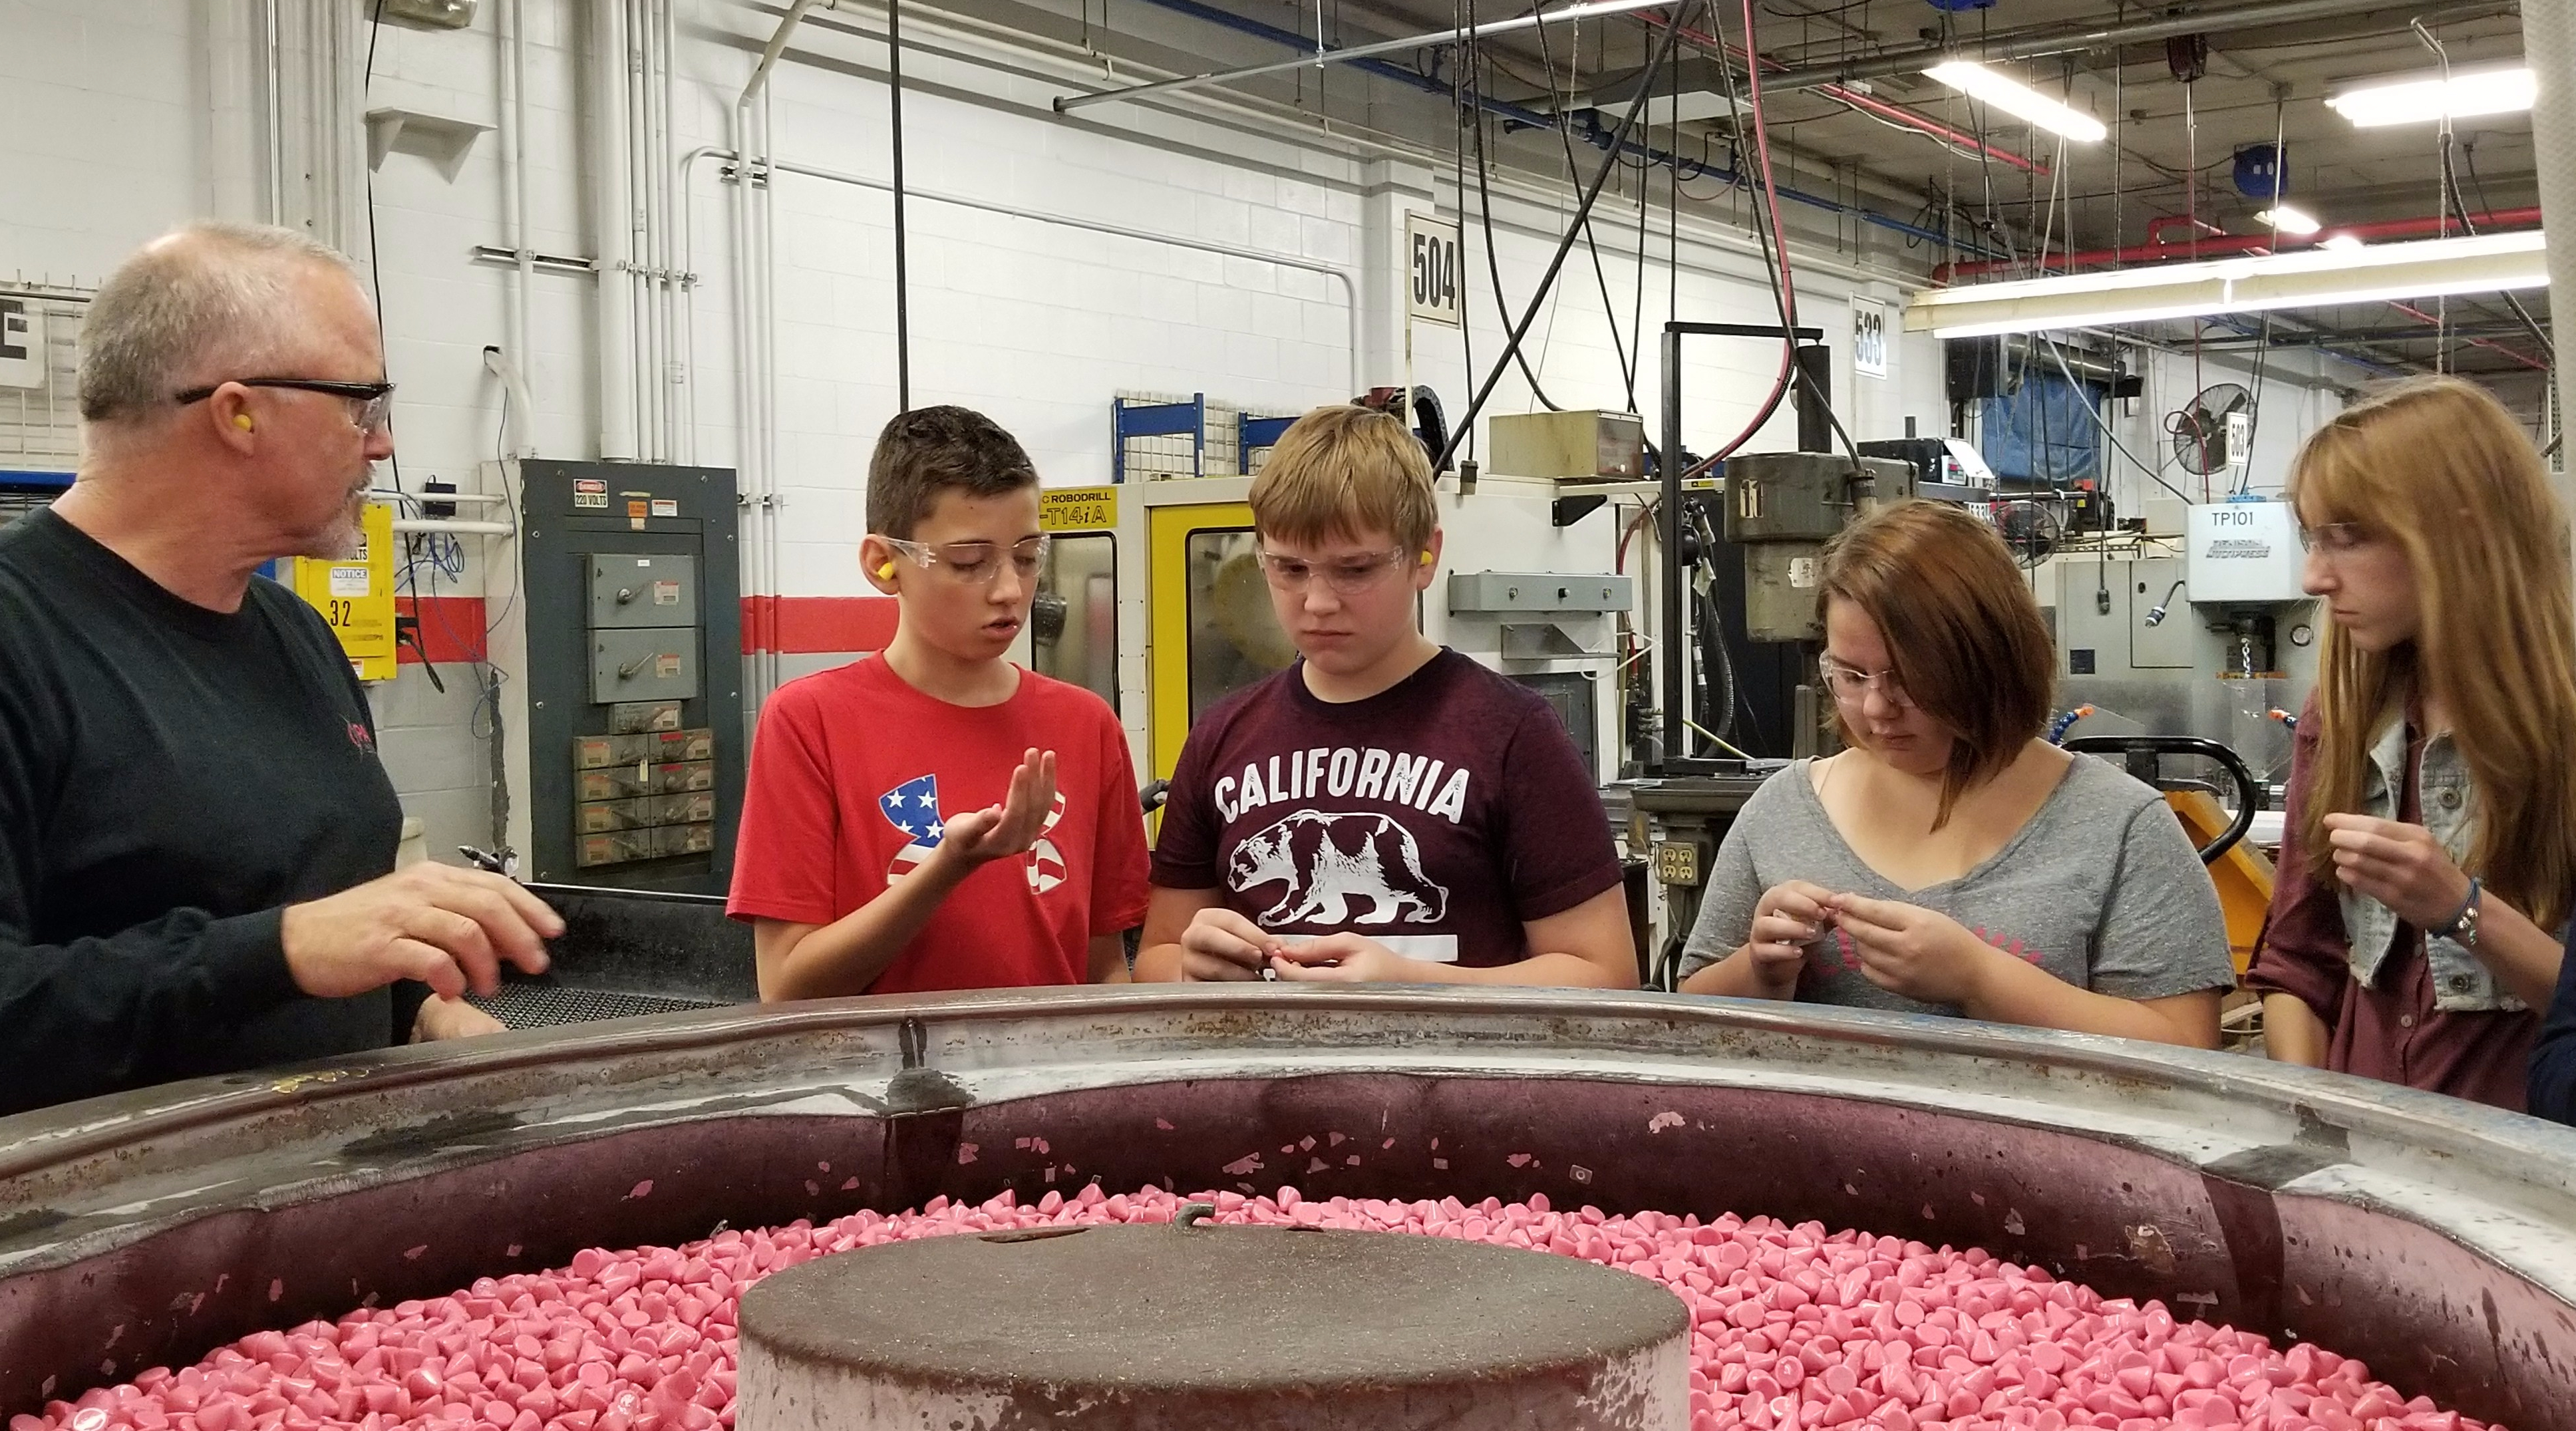 Kids at Pace Industries for Mfg Day